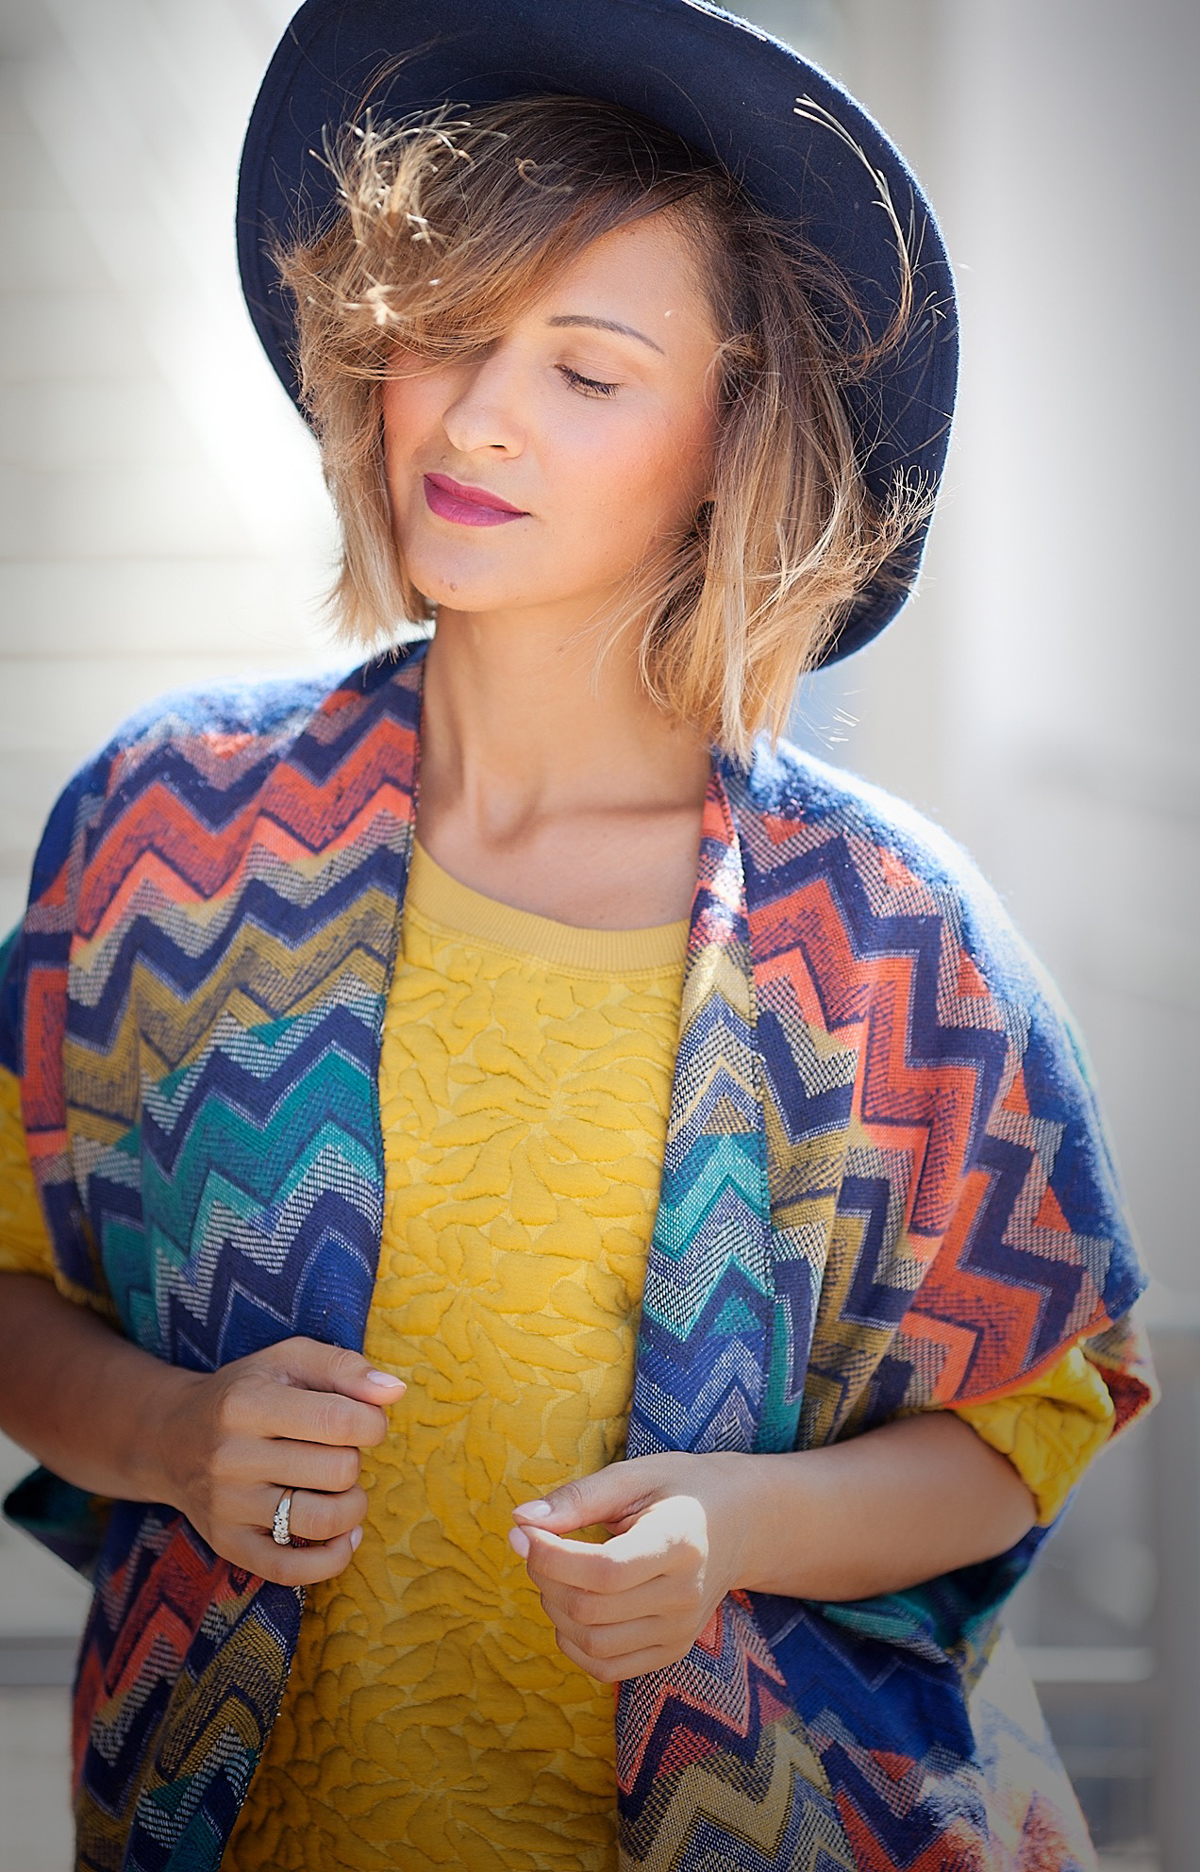 striped-poncho-outfit-by-fashion-blogger-galant-girl